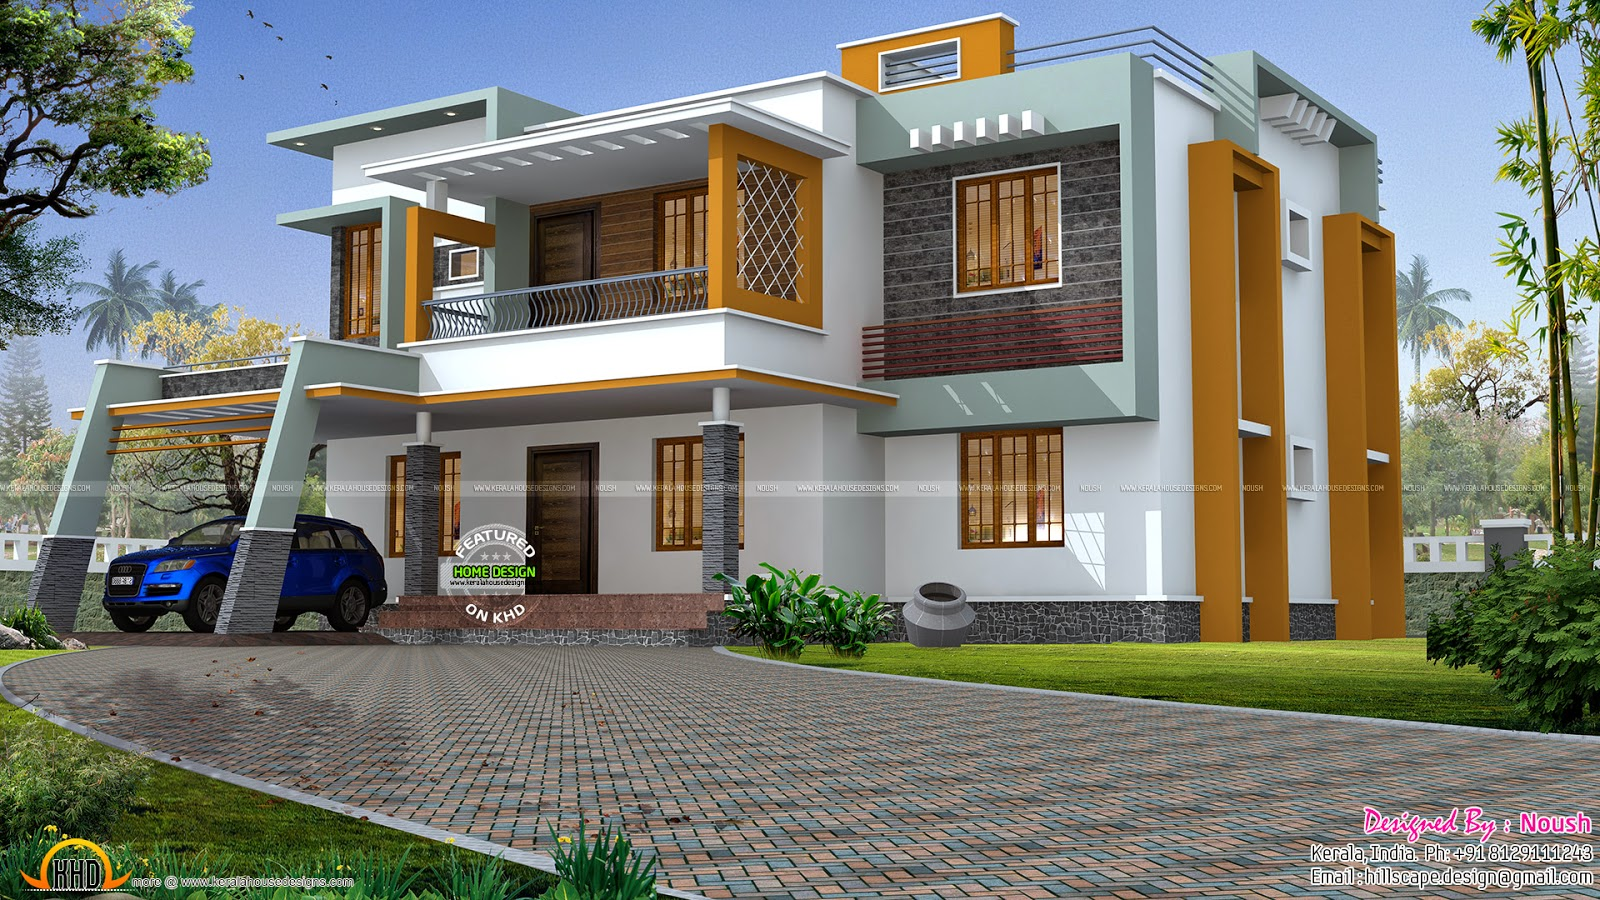 Box style house - Kerala home design and floor plans